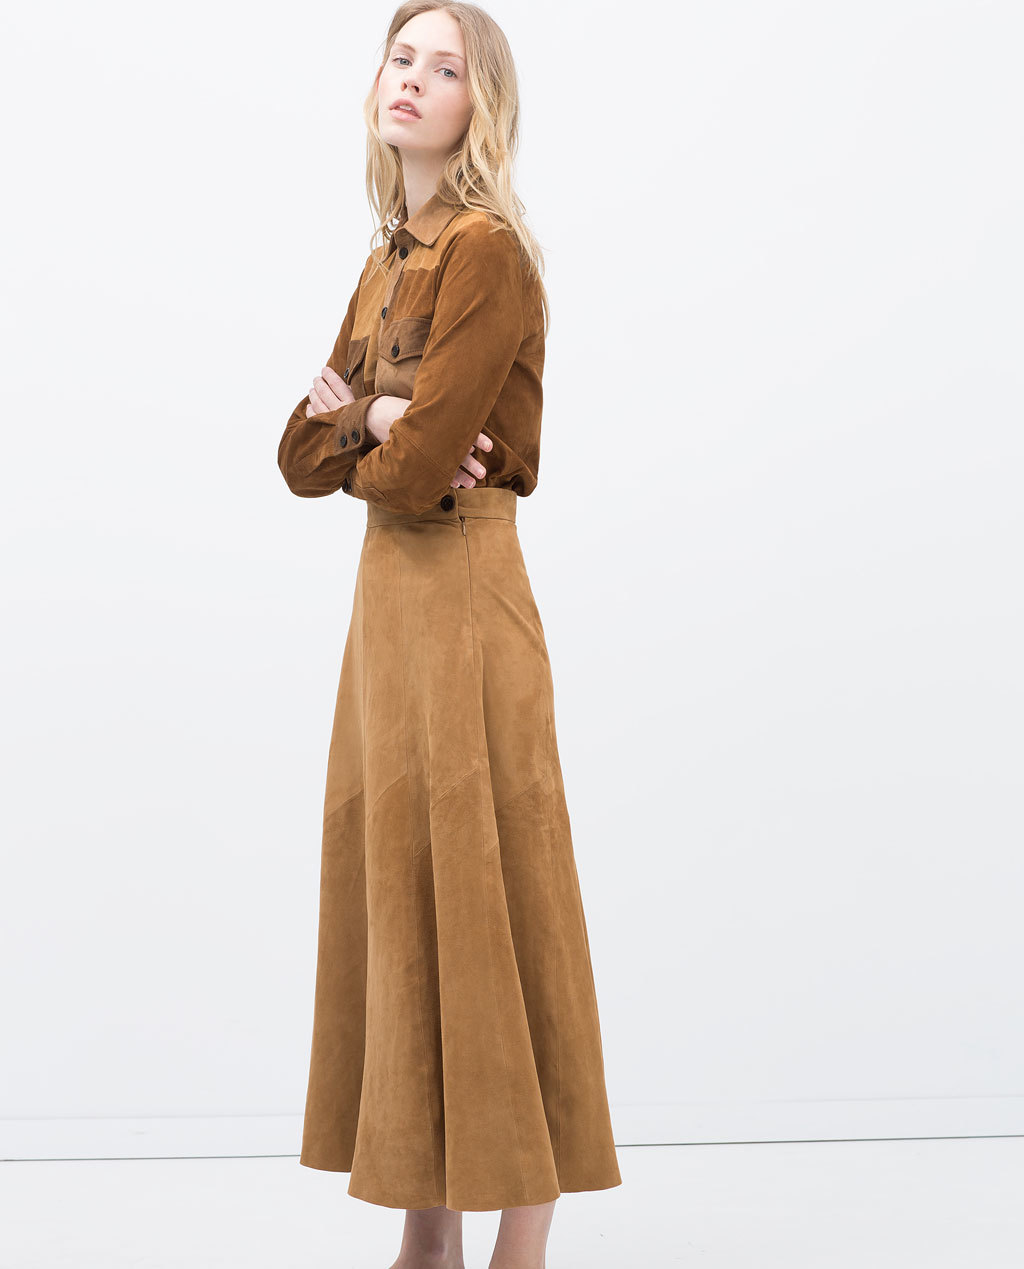 Long Suede Skirt - pattern: plain; length: ankle length; fit: loose/voluminous; waist: high rise; predominant colour: camel; occasions: casual, evening, creative work; style: a-line; fibres: leather - 100%; pattern type: fabric; texture group: suede; season: s/s 2015